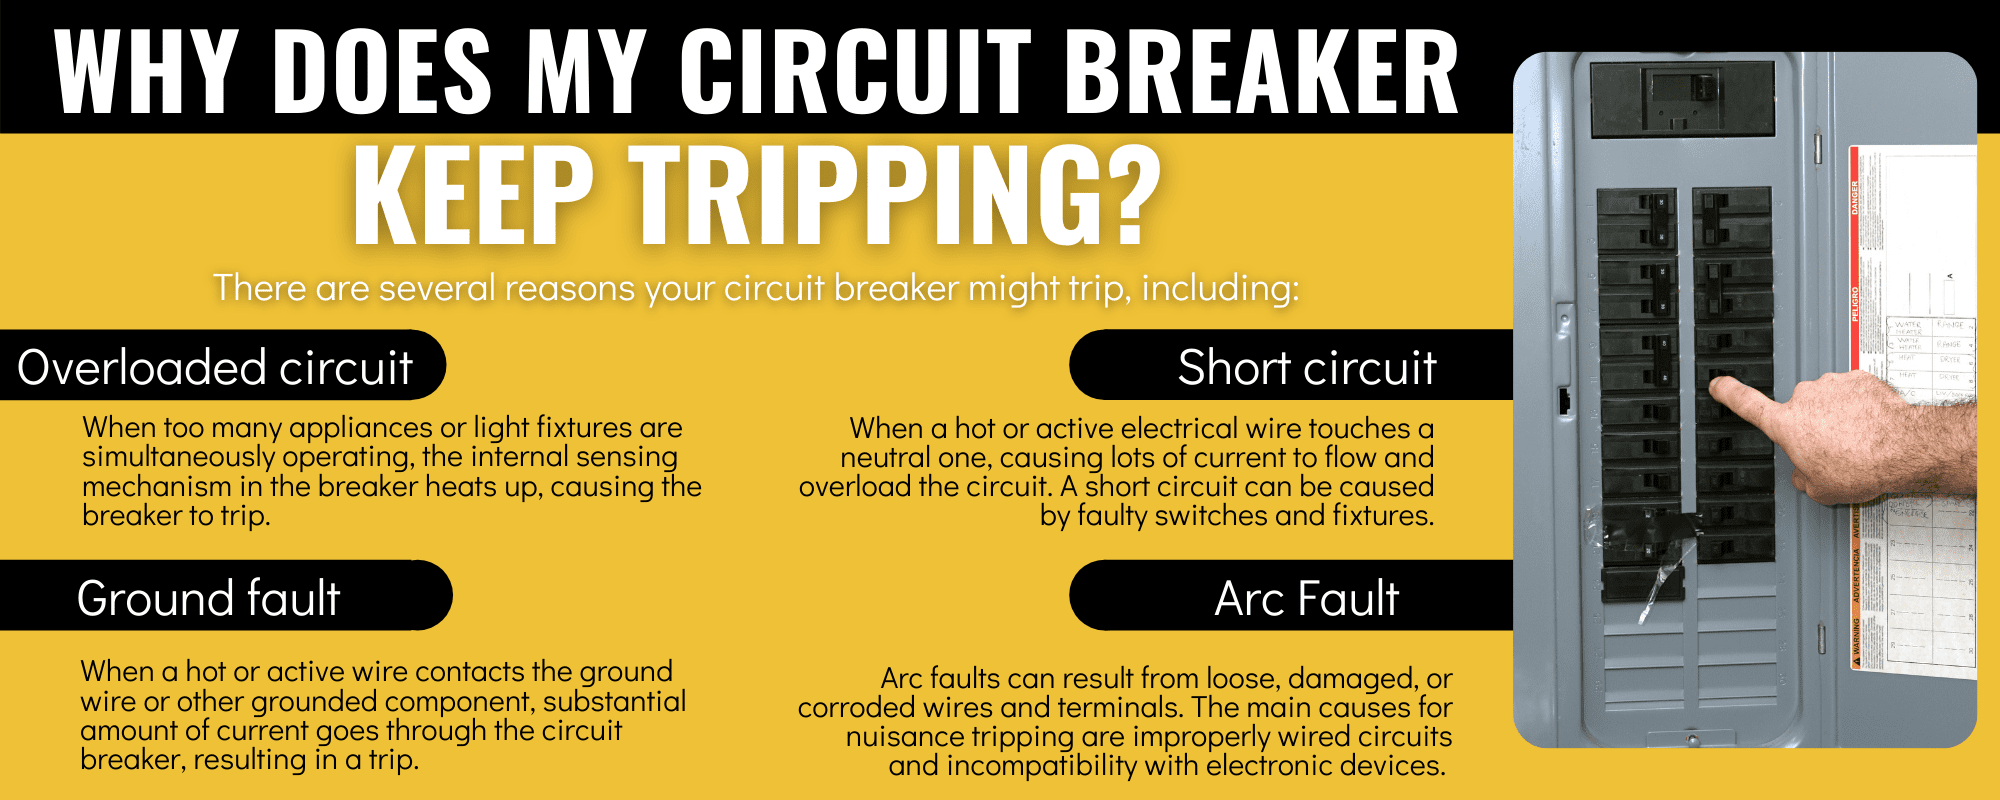 infographic depicting reasons for circuit breaker trips